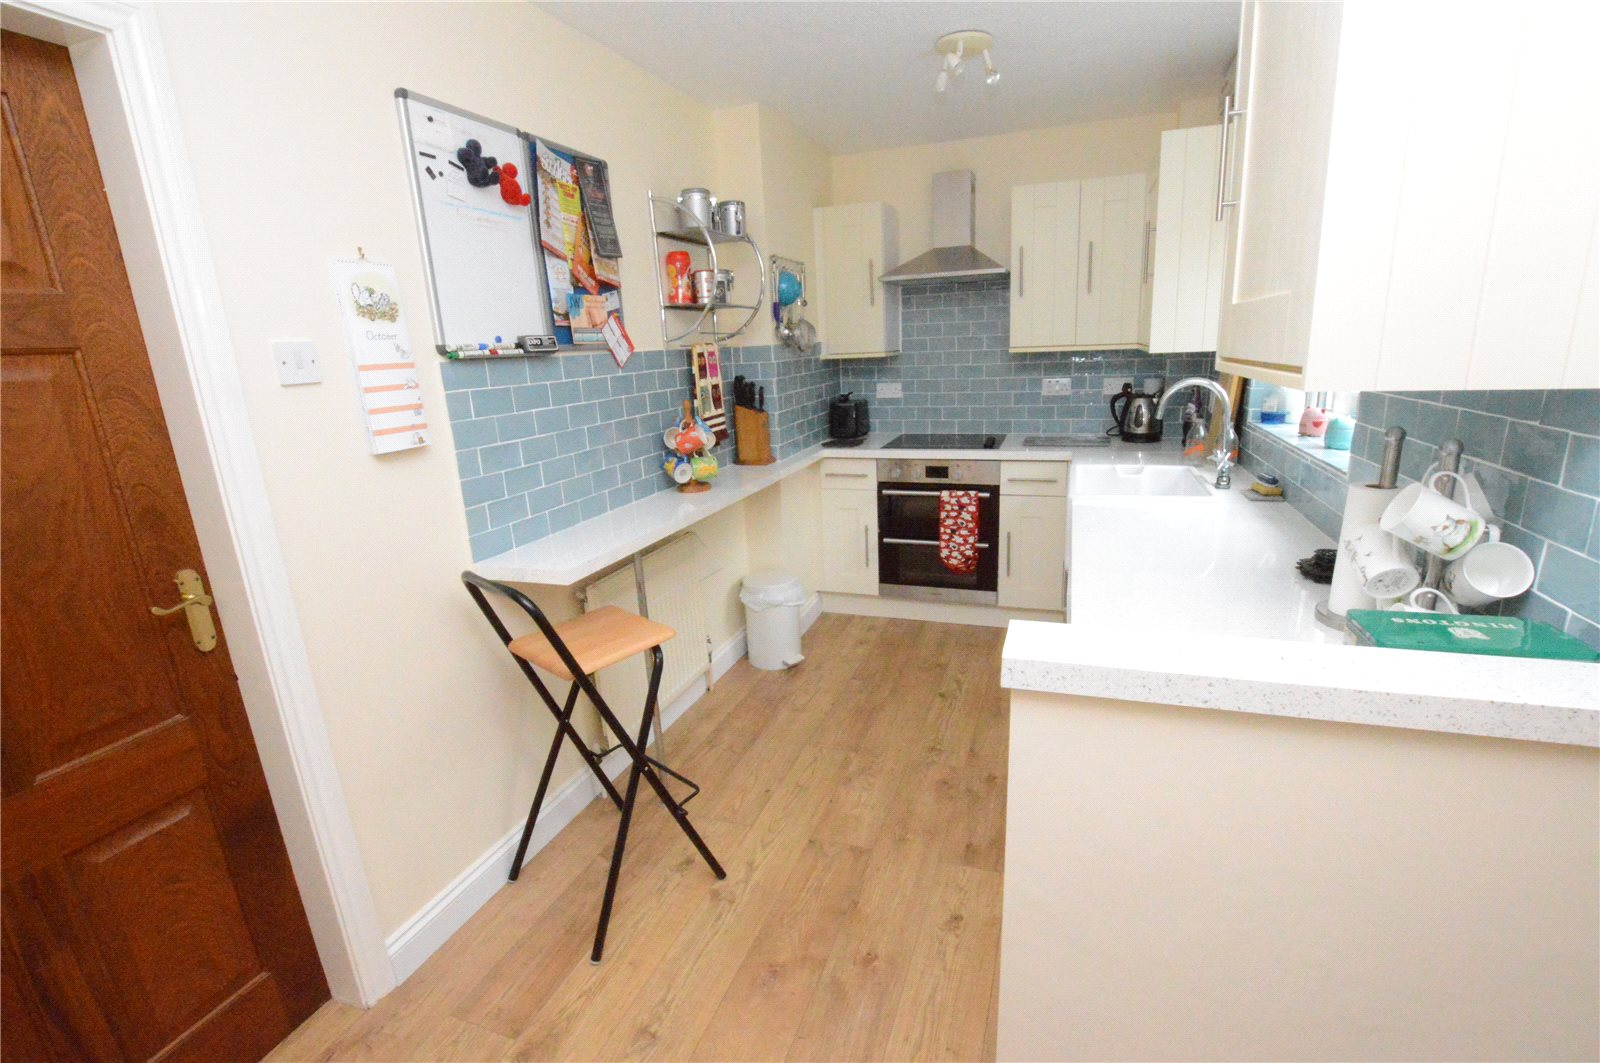 property for sale in Crossgates, Interior kitchen of home, gallery kitchen